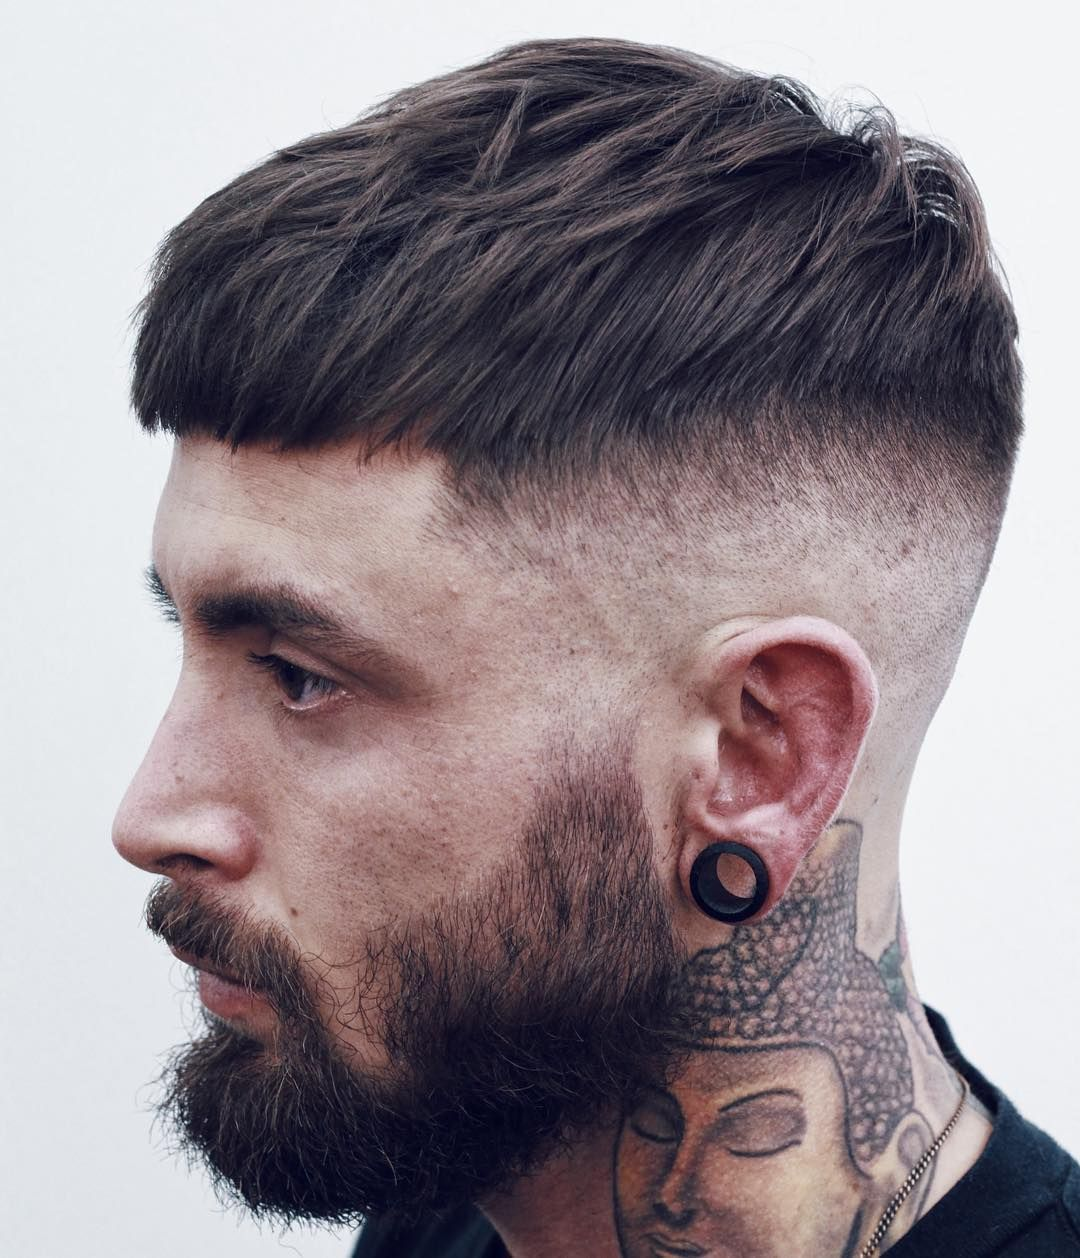 Hairstyles Men 100 Cool Short Haircuts For Men 2018 Update  Pinterest  Short